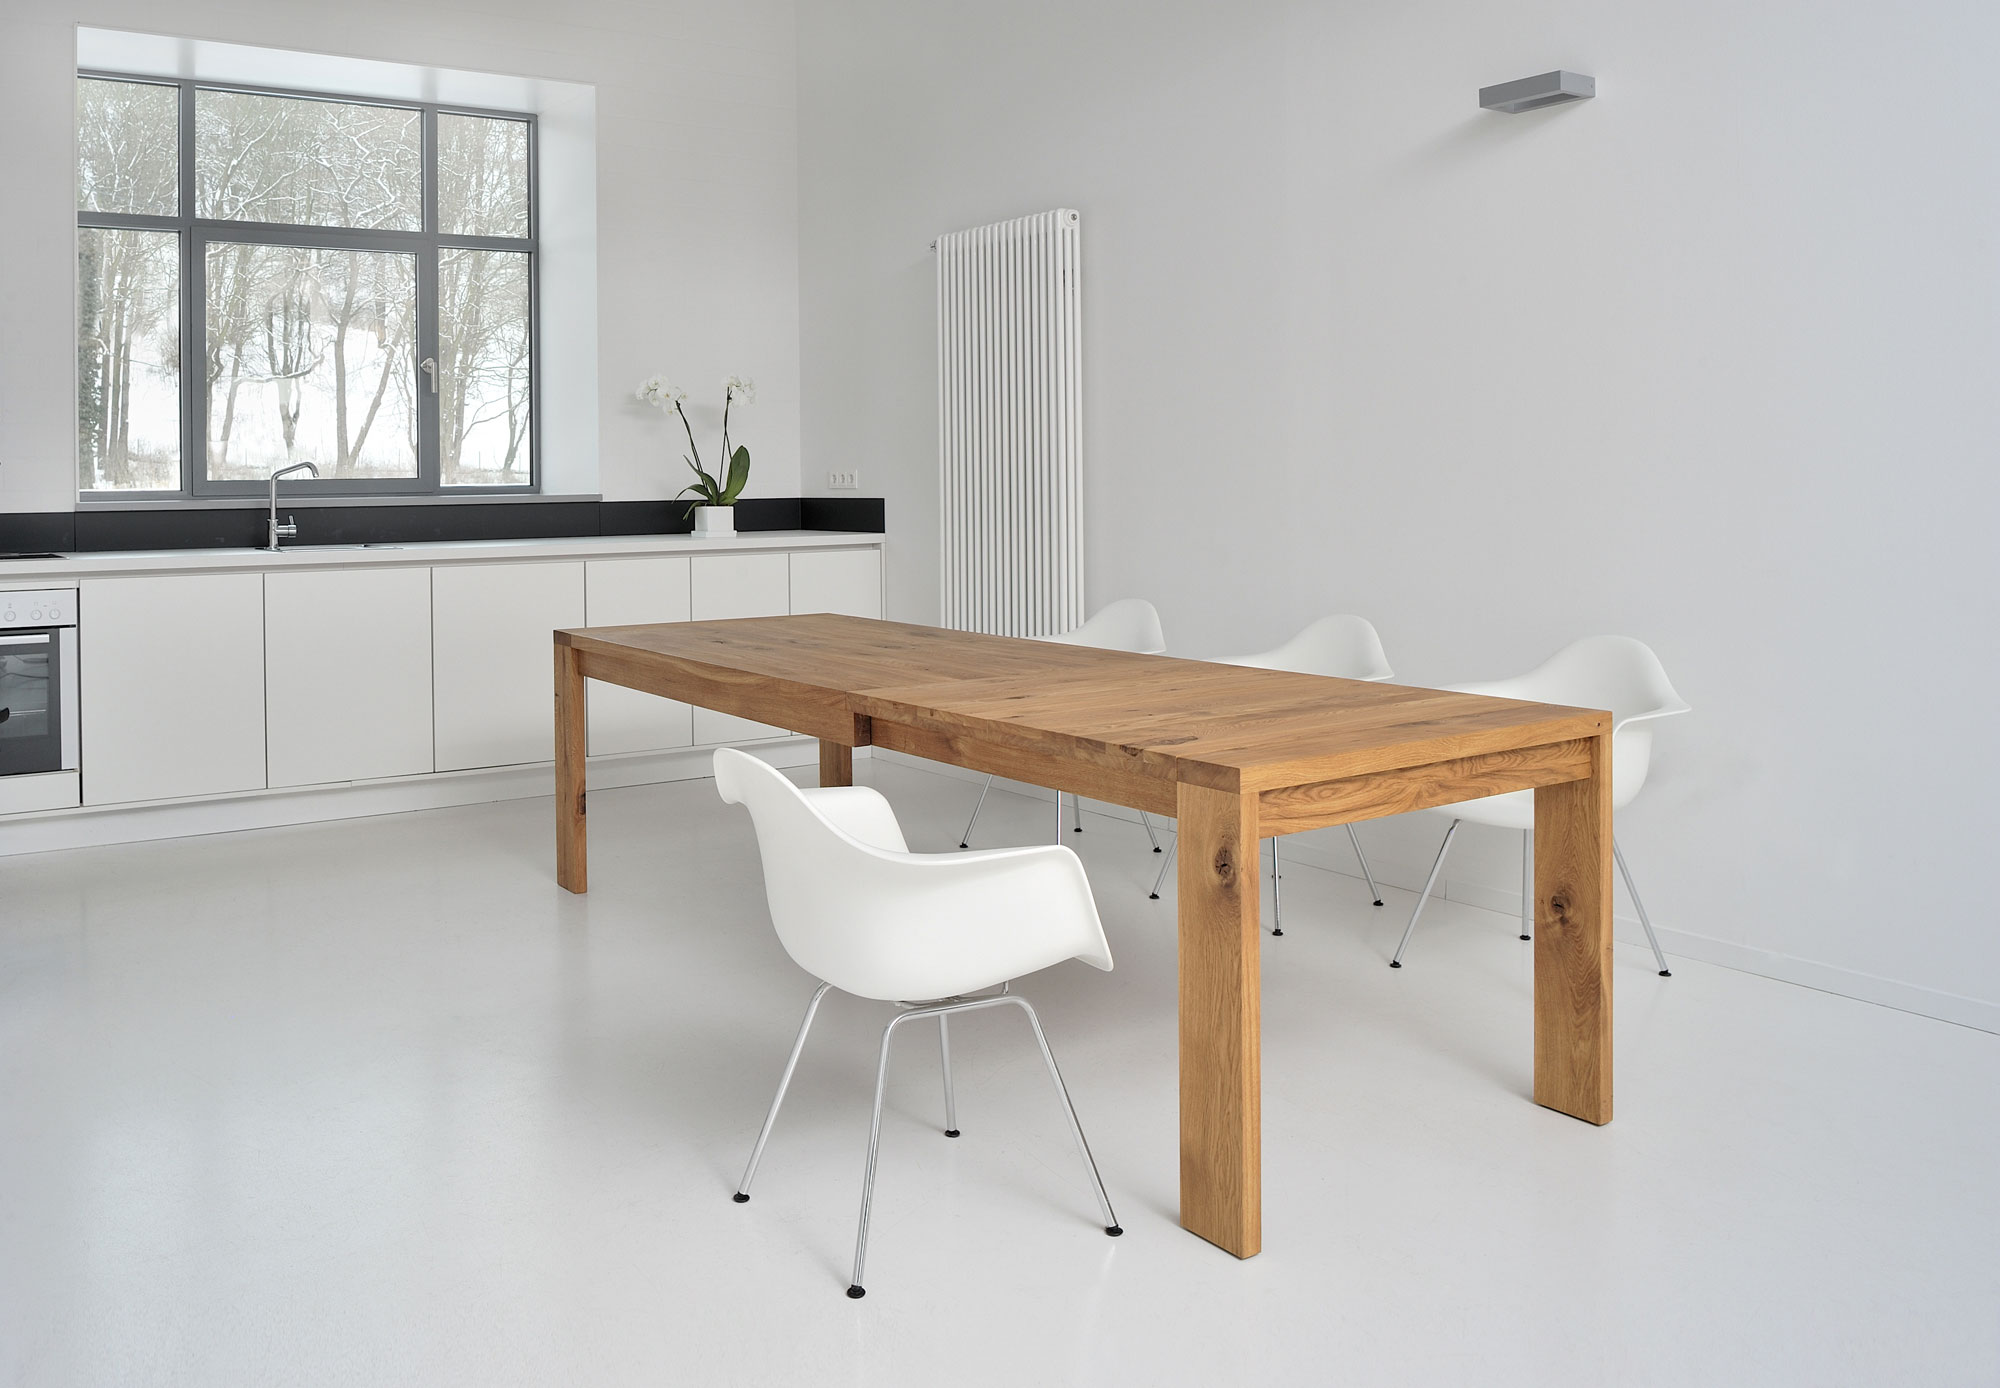 Extendable Table LUNGO 2761 custom made in solid wood by vitamin design